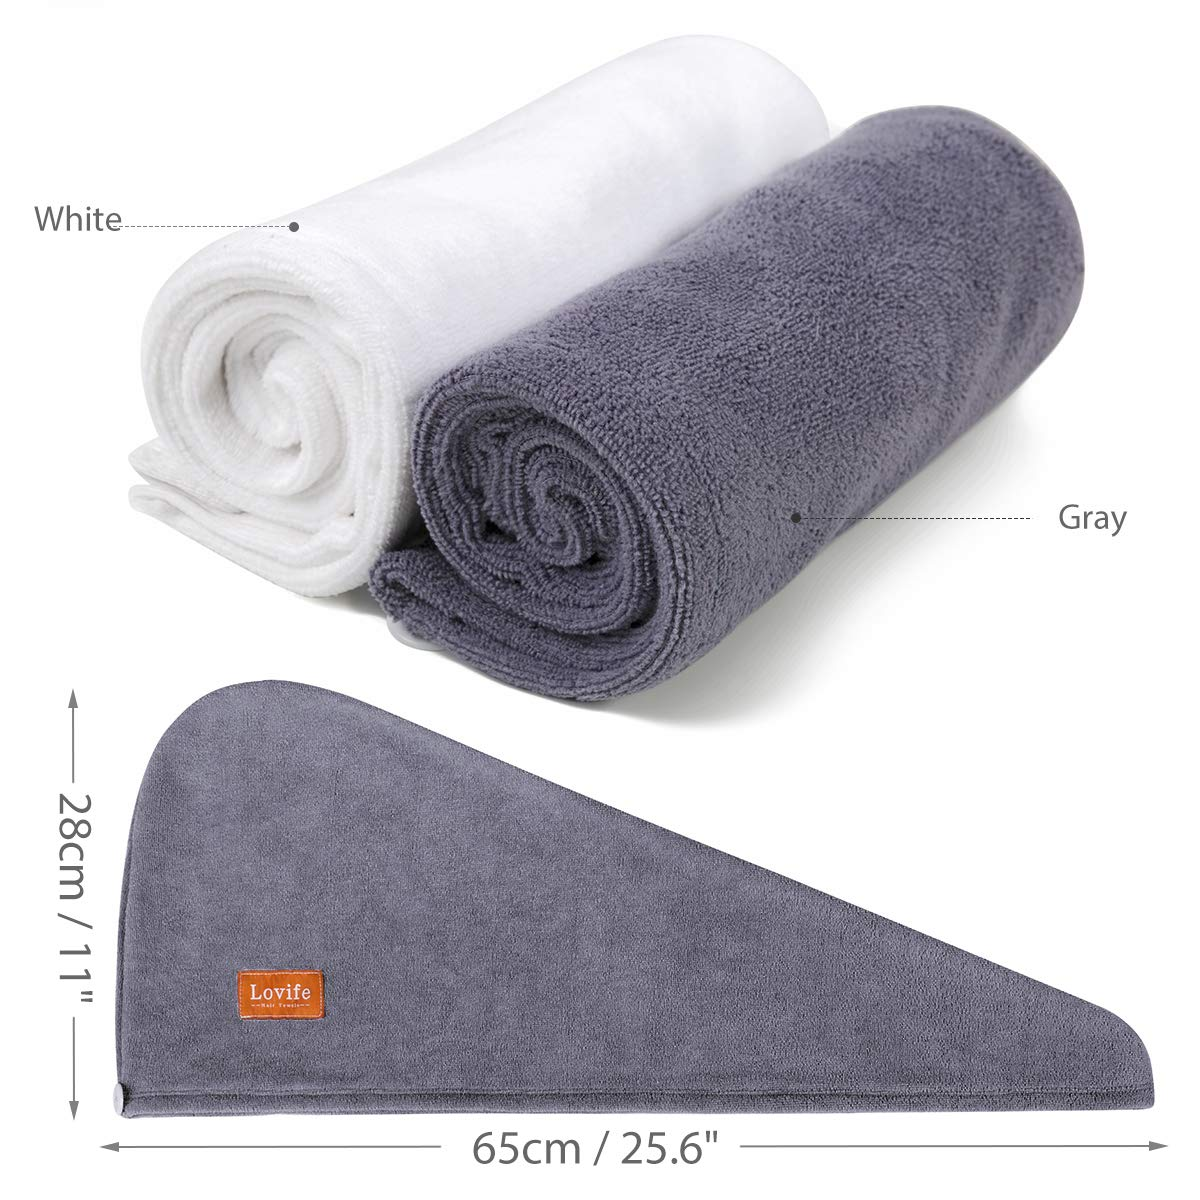 Lovife Microfiber Hair Towel Drying Wraps for Women Bath Shower Head Turban Towels cap with Button 2 Pack Absorbent Anti-Frizz for Long & Curly Hair